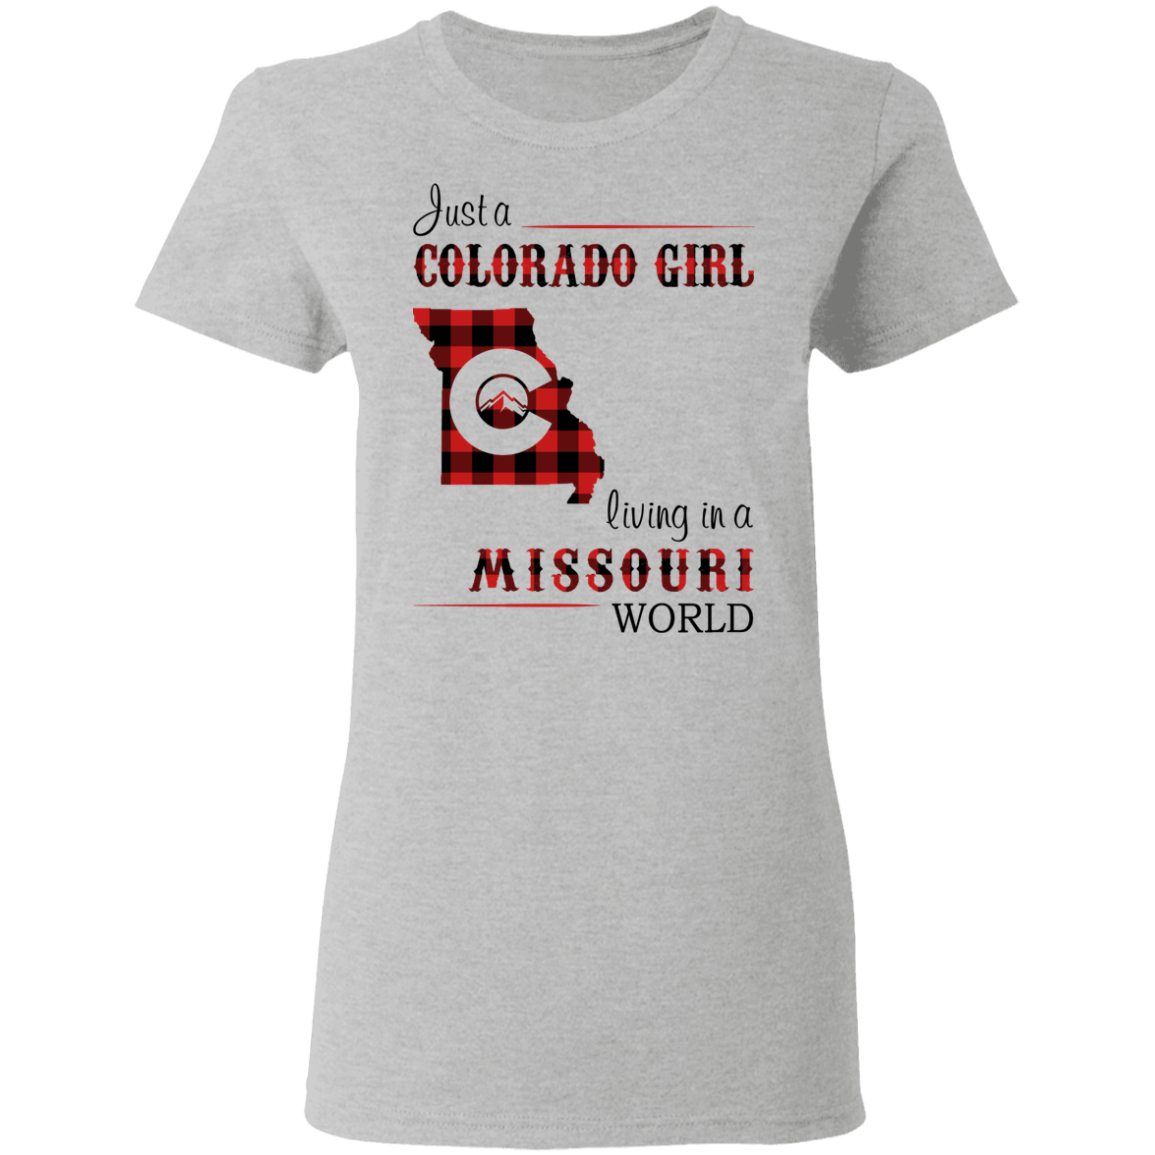 JUST A COLORADO GIRL LIVING IN A MISSOURI WORLD